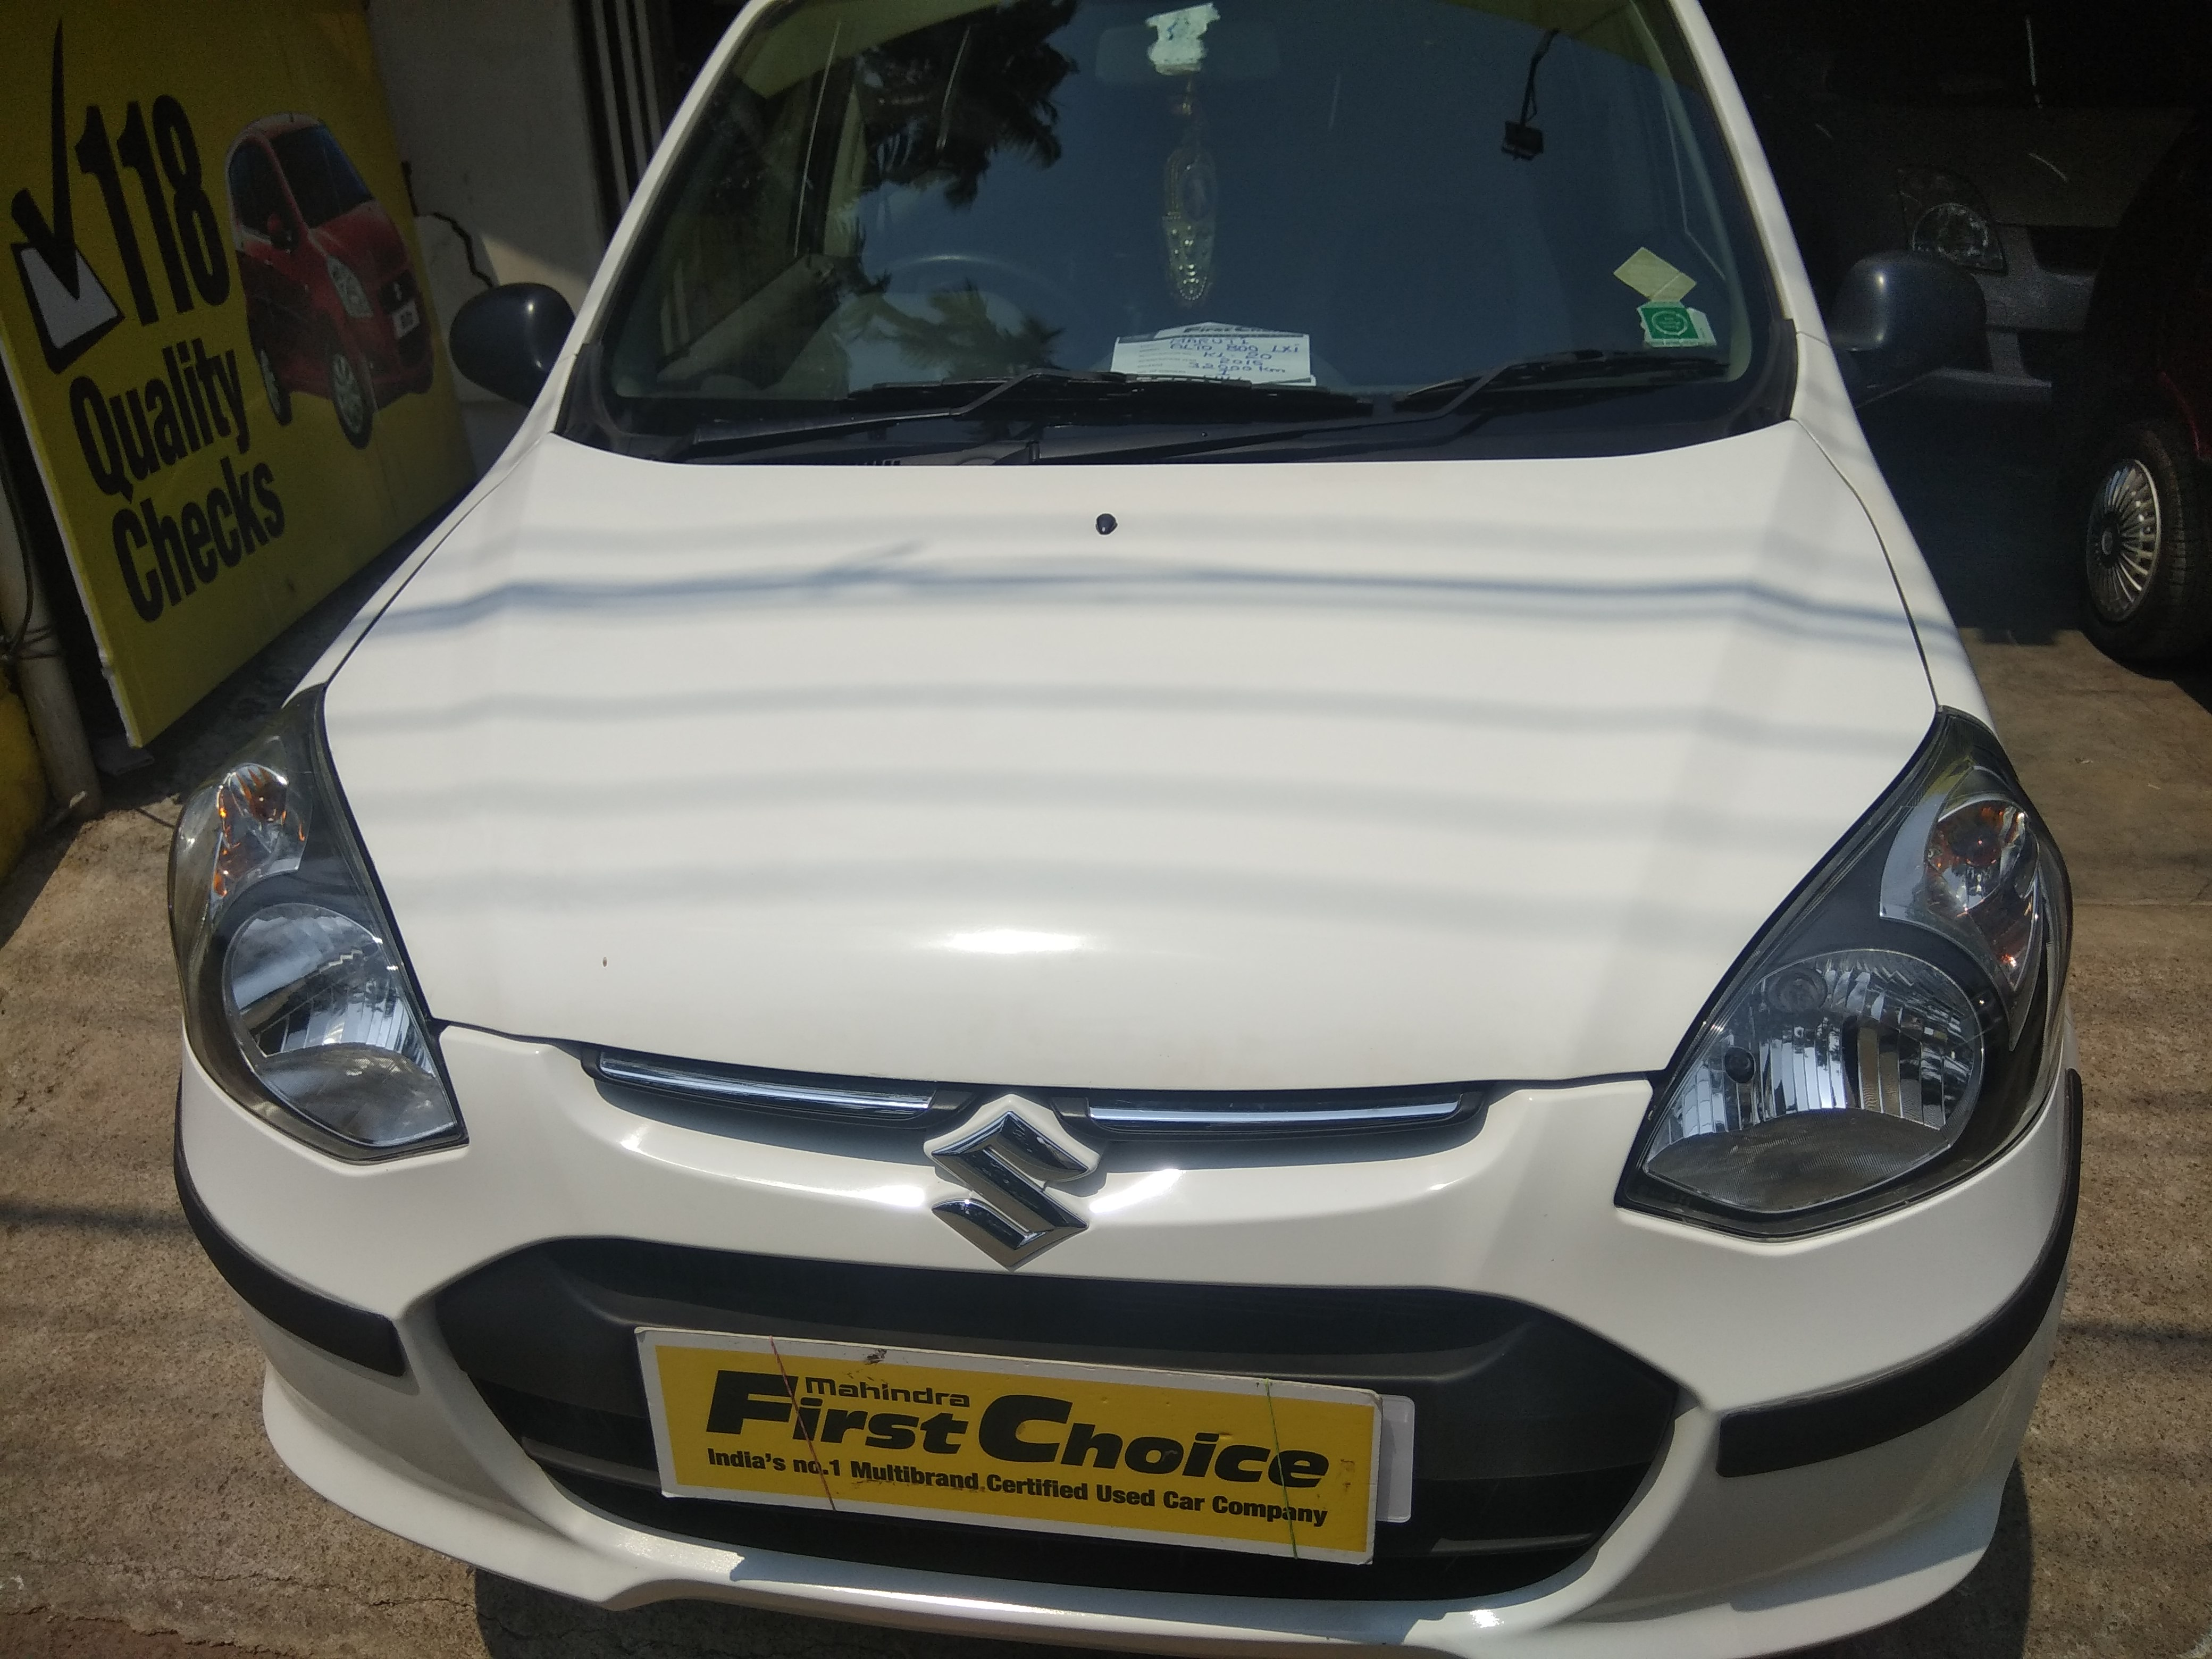 Image Of Used Car Olx Kerala Cheap Rate Cars In Kerala Olx Best Cars